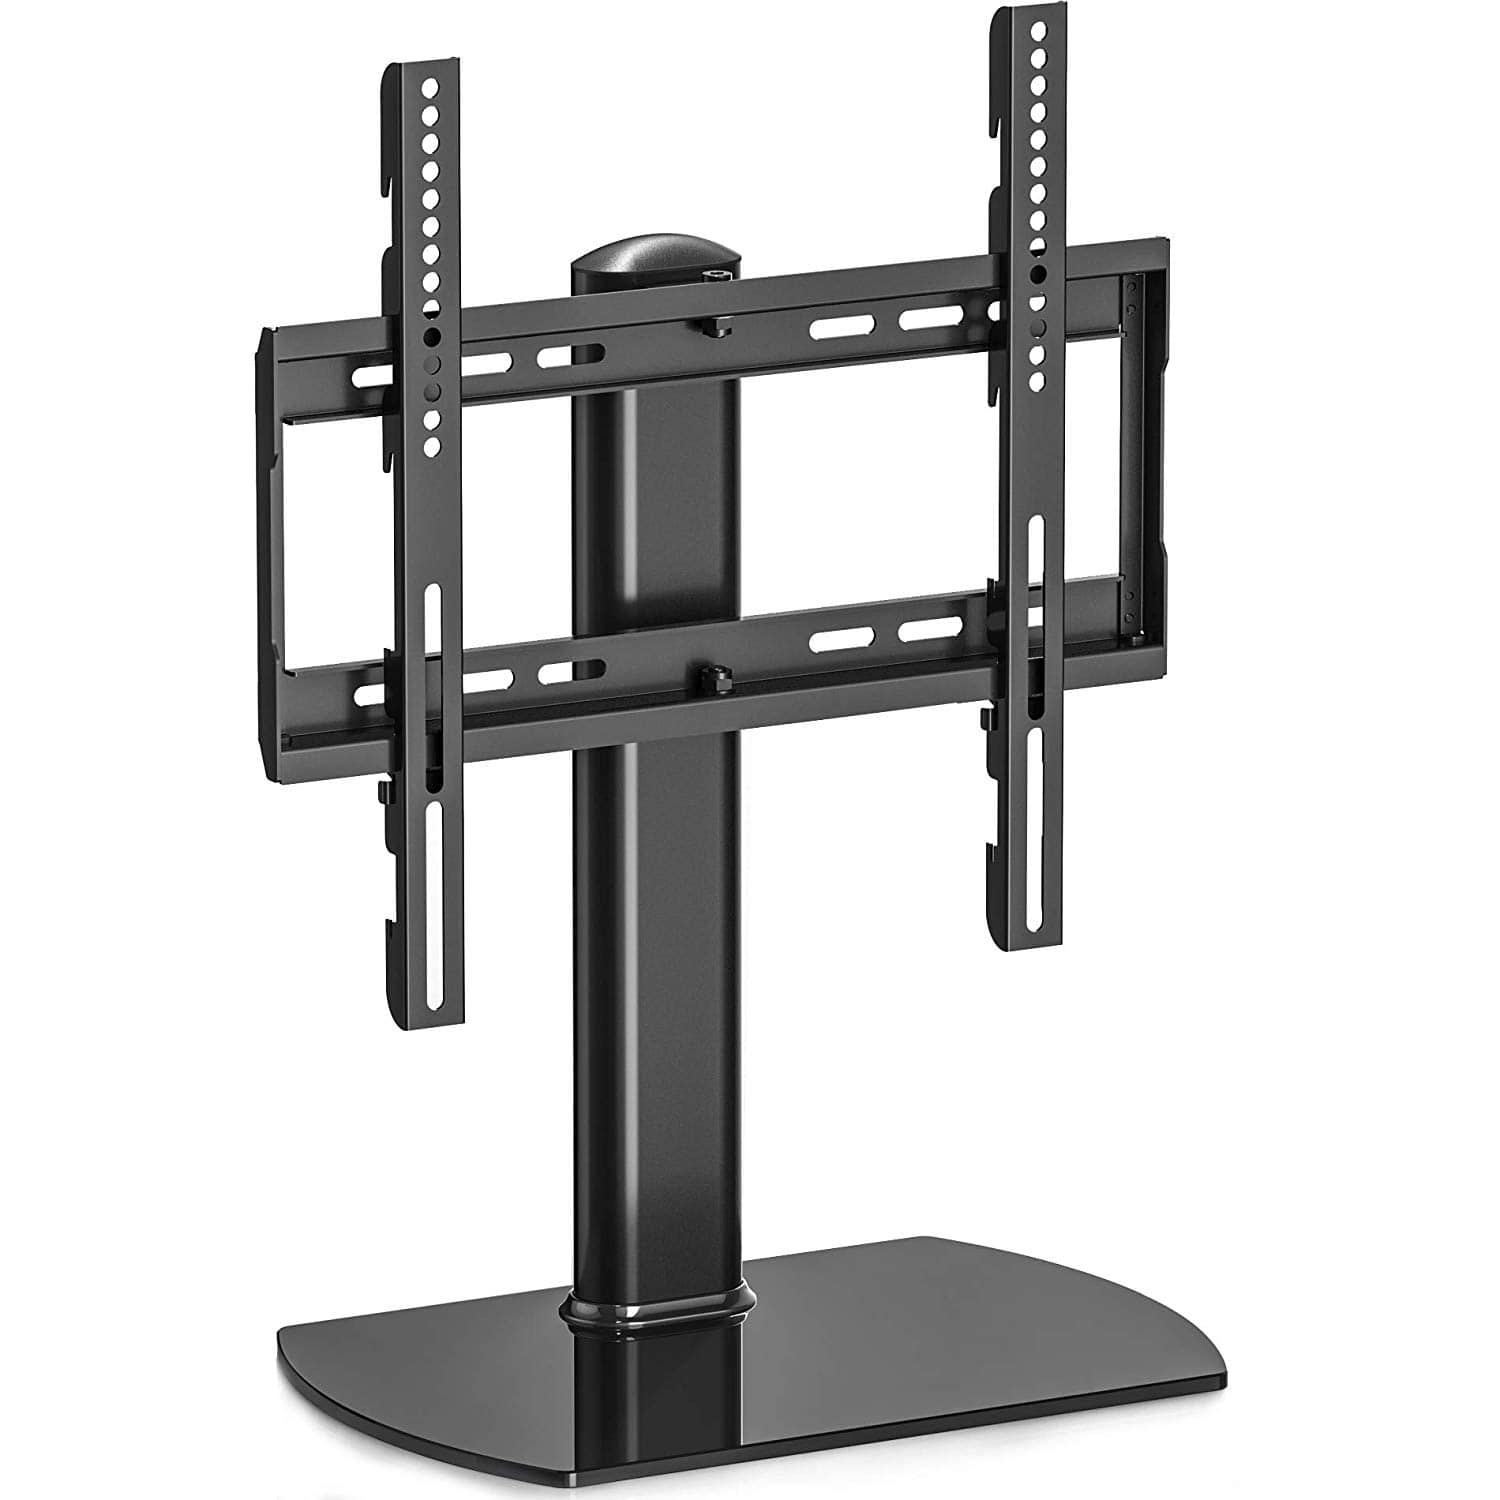 Universal TV Stand Base Swivel Tabletop TV Stand Base with Mount $27.37